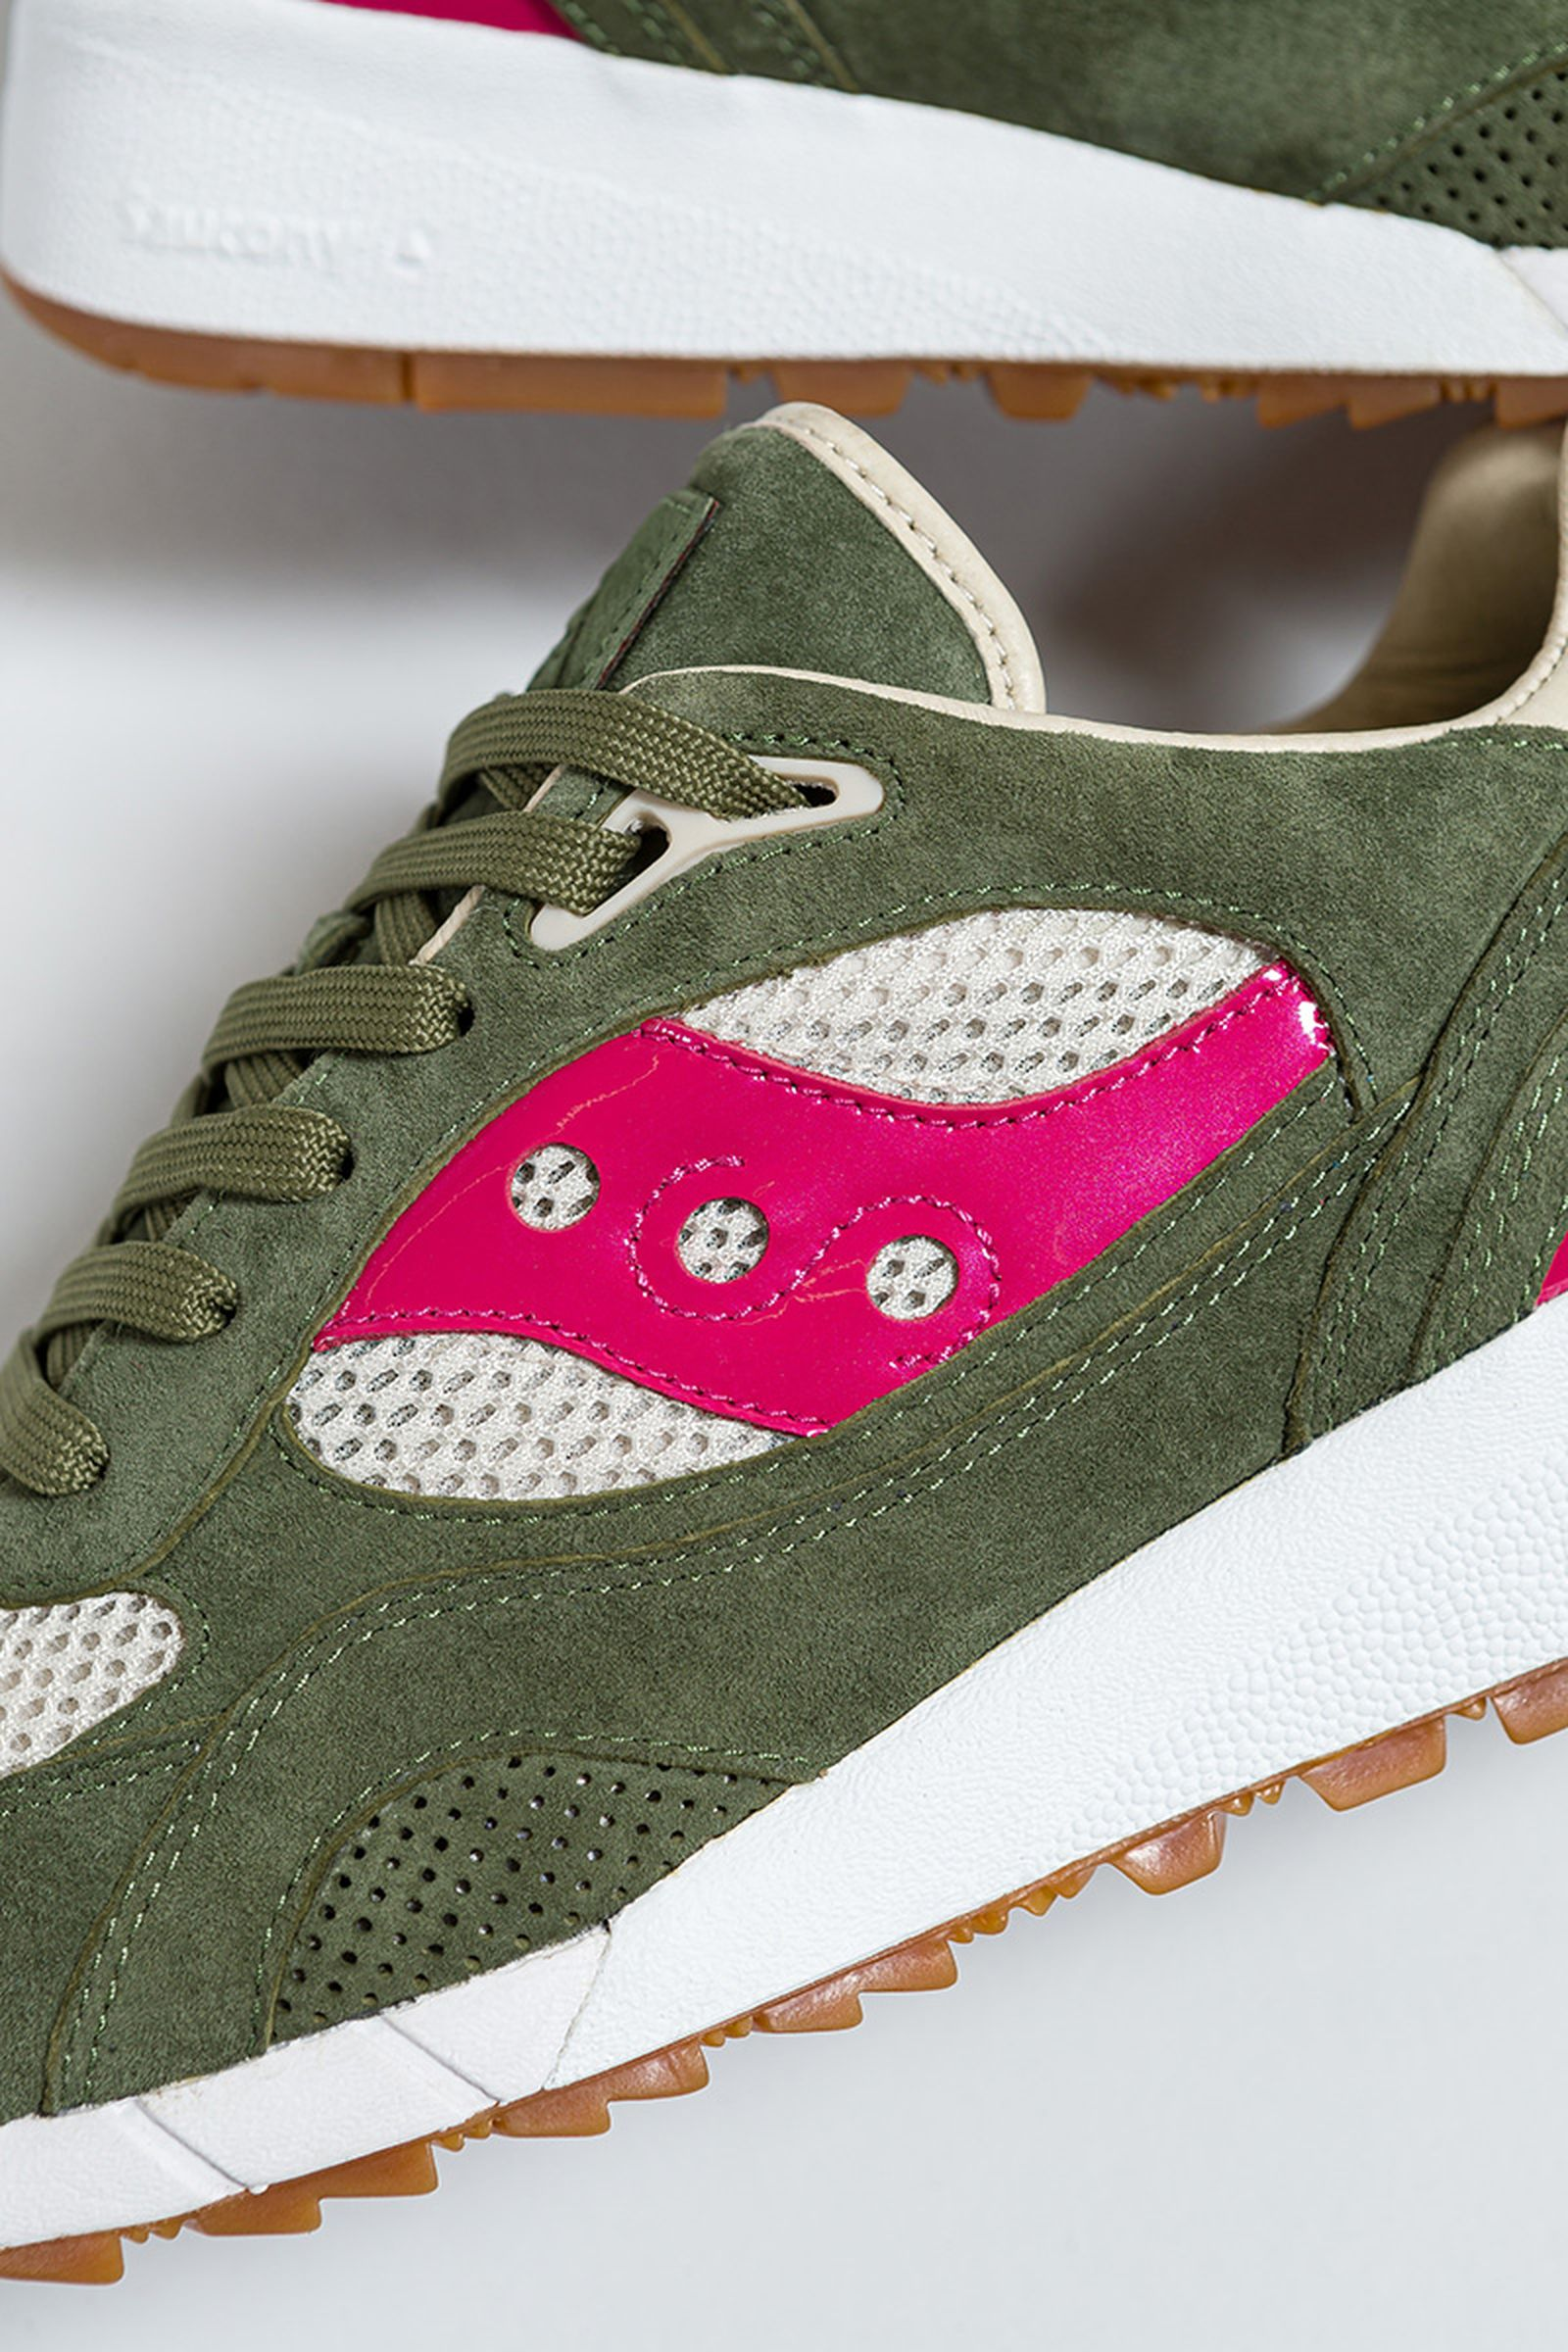 up-there-saucony-shadow-6000-release-date-price-04